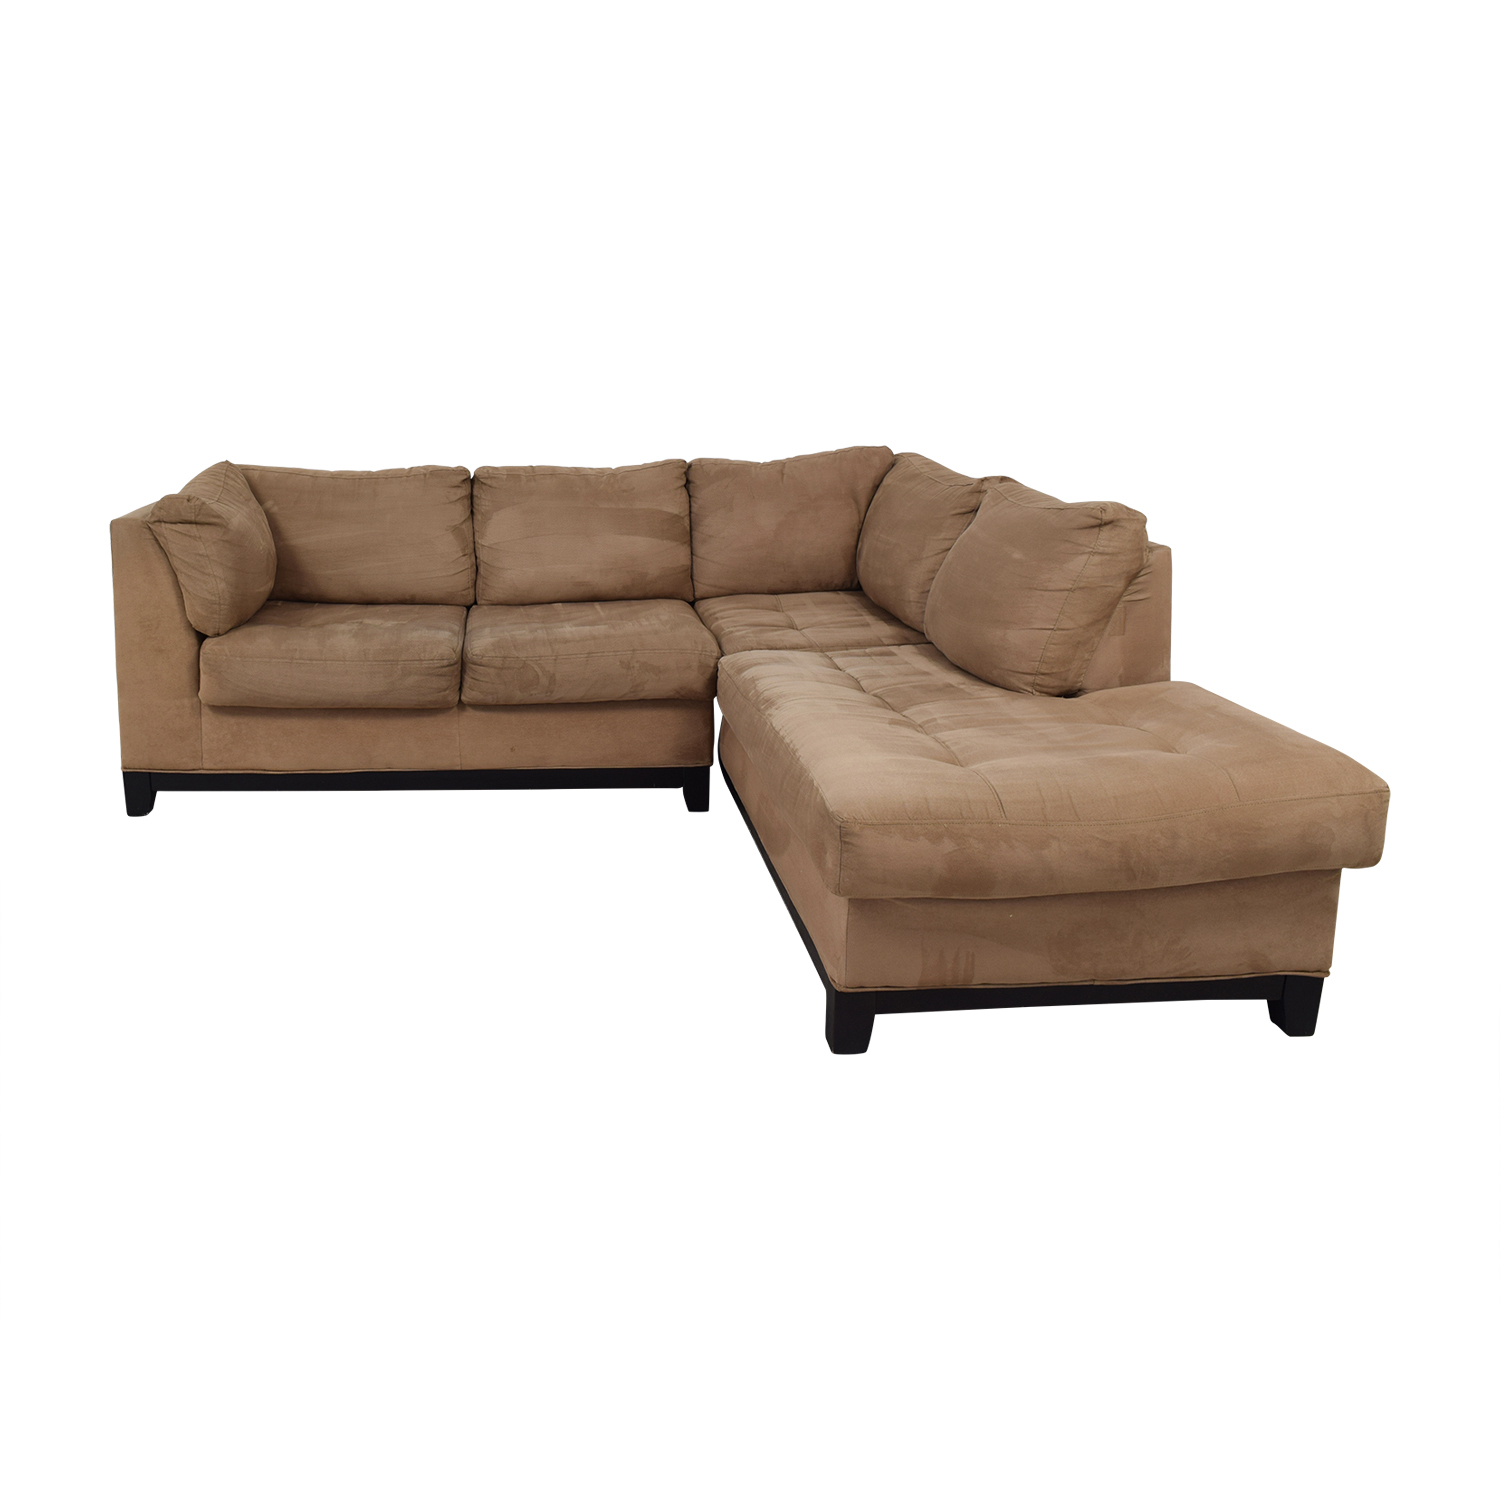 Raymour & Flanigan Raymour & Flanigan Tan Chaise Sectional used